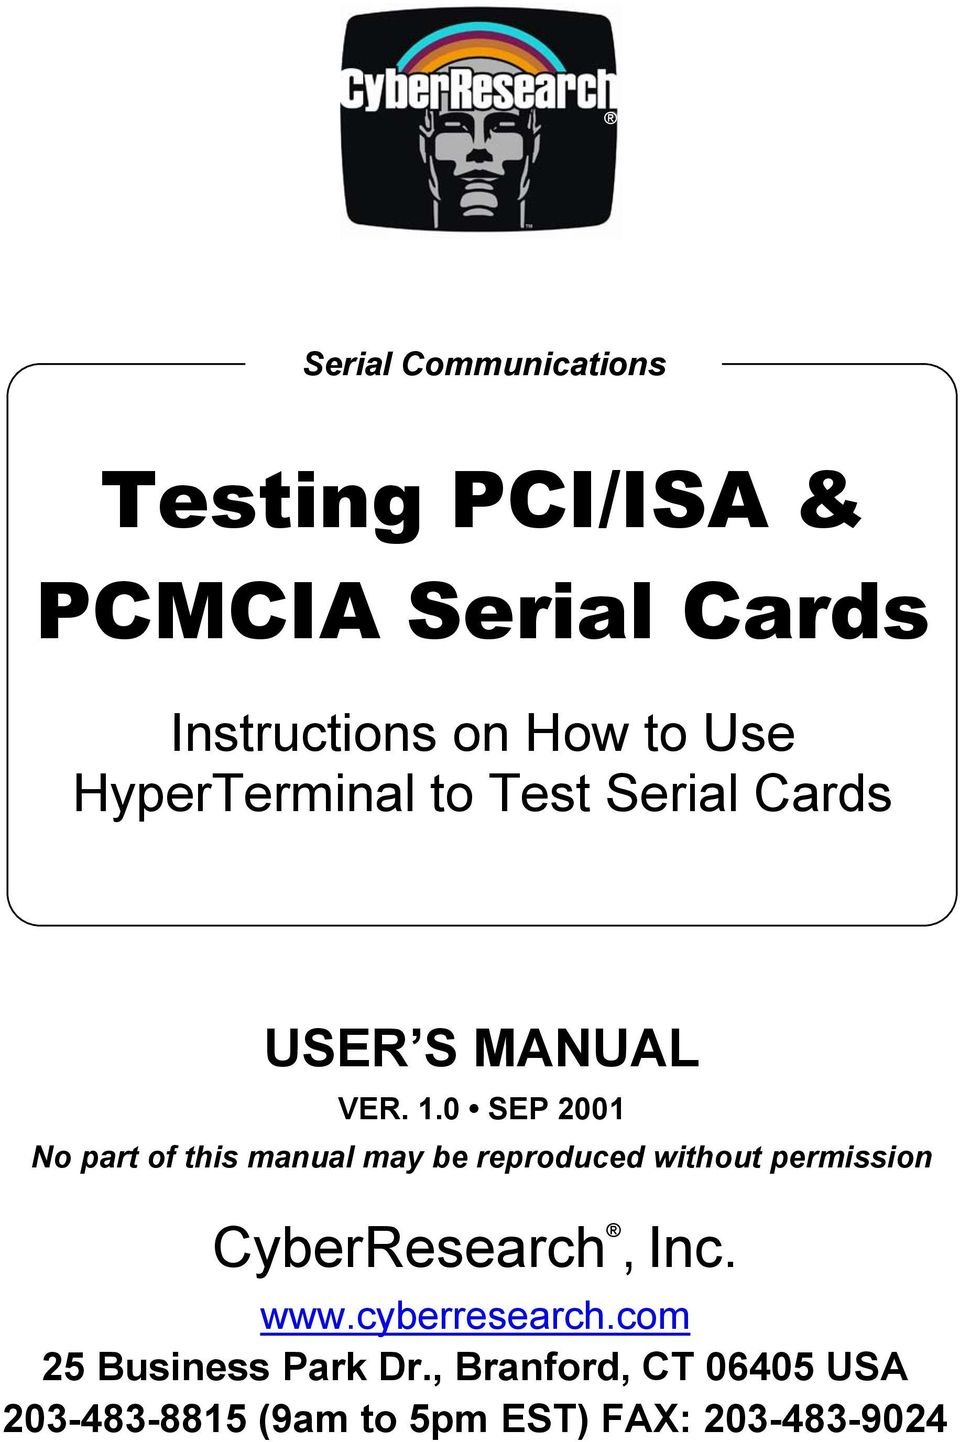 0 SEP 2001 No part of this manual may be reproduced without permission CyberResearch,